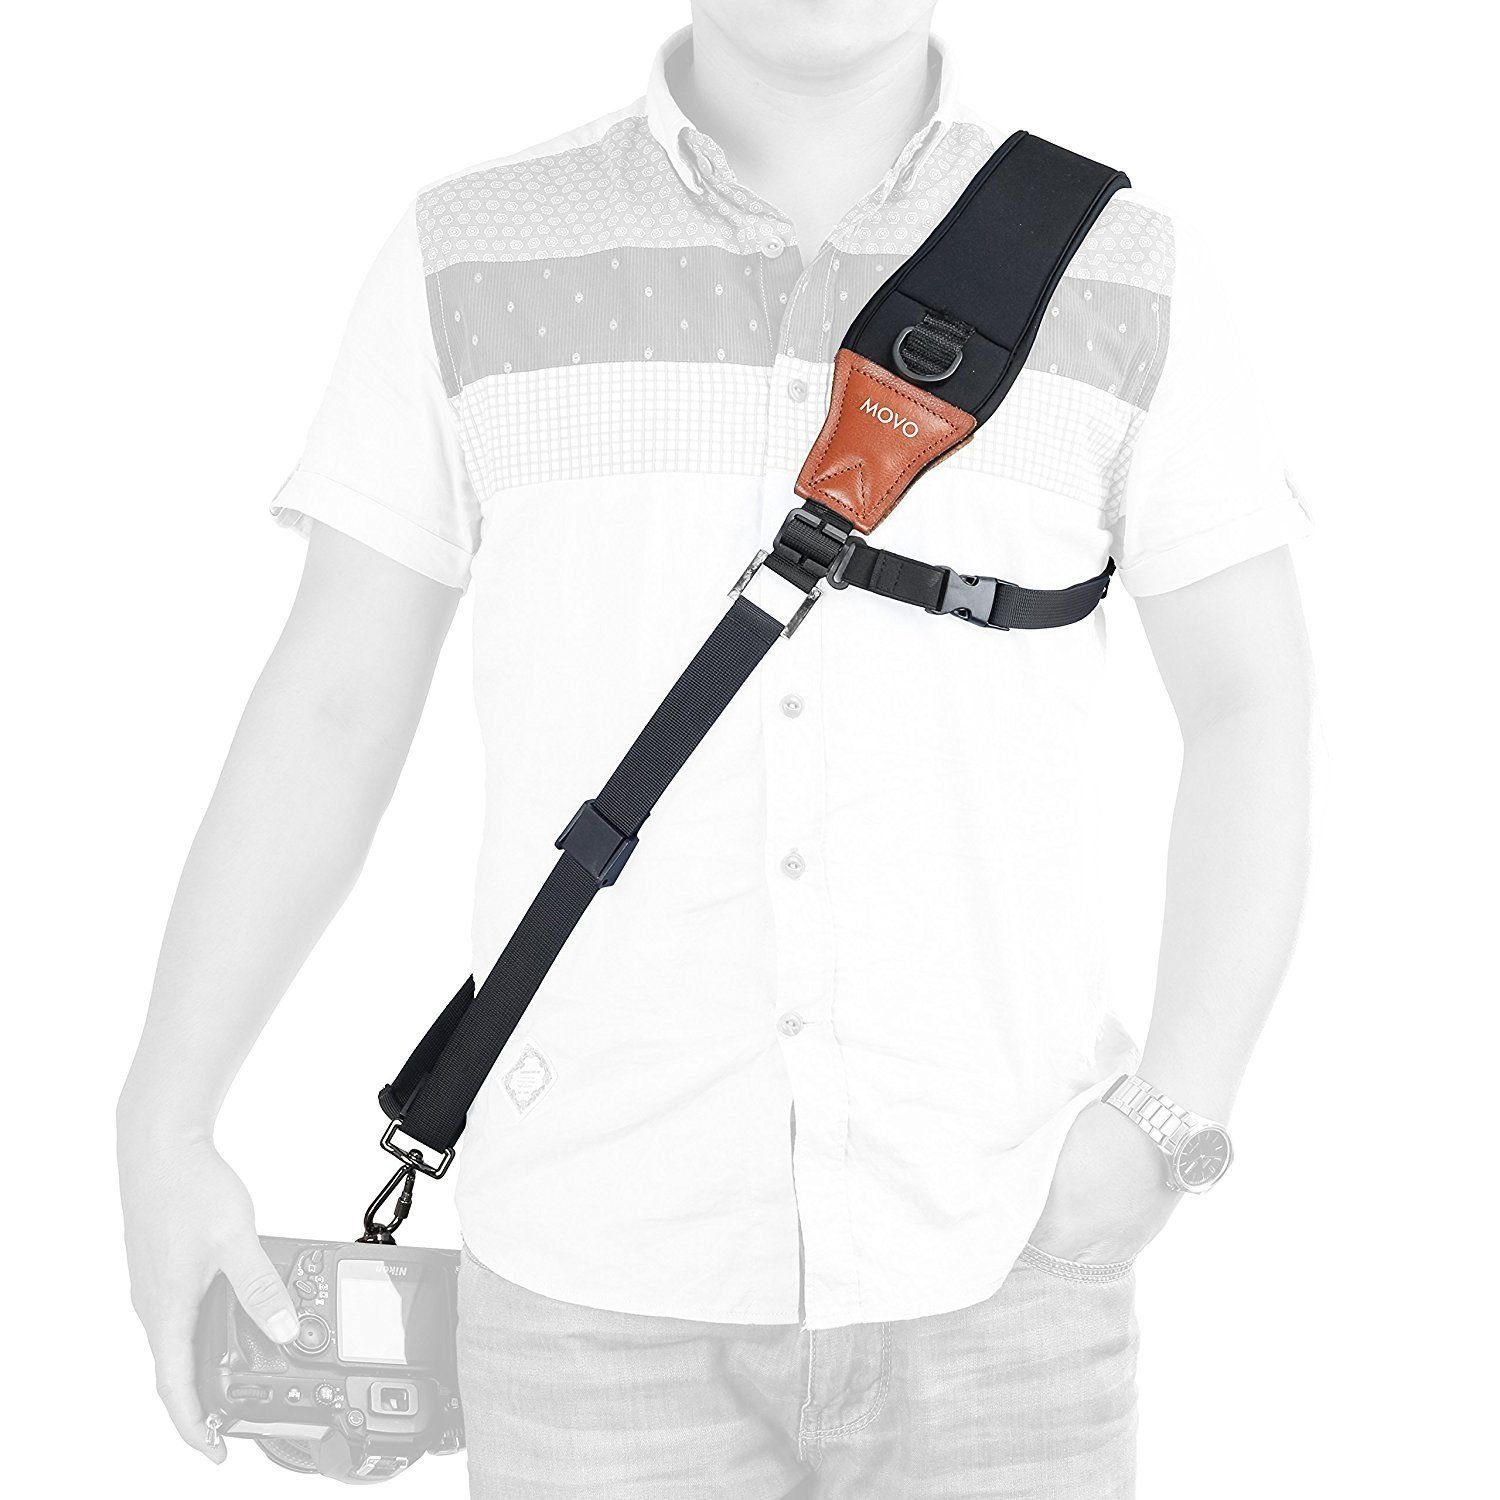 Movo MP-SS7 Rapid Action Over-The-Shoulder Camera Sling Strap with Quick Release Clip /& Neoprene//Vintage Leather Shoulder Pad